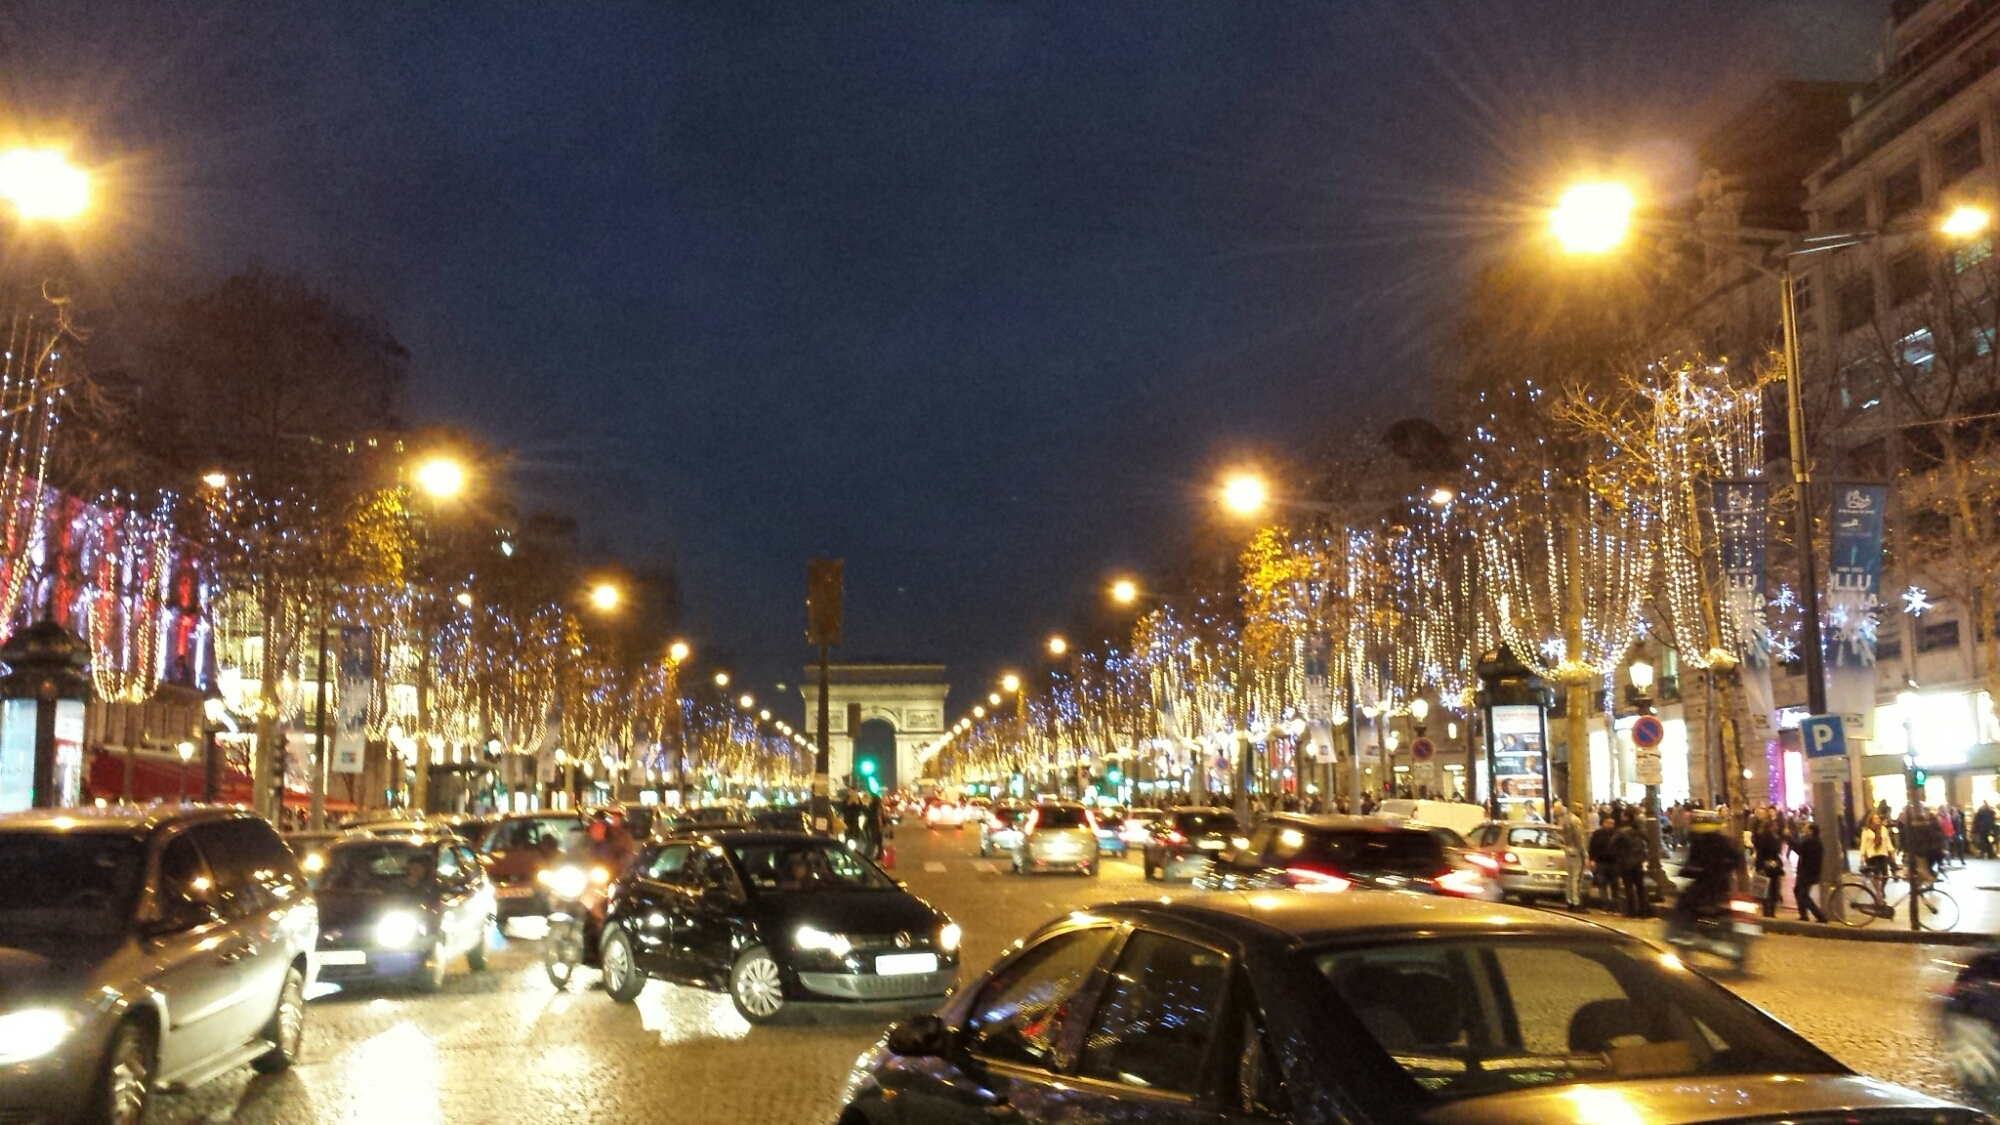 #B38718 20151220 – Paris Champs Elysées – Décorations De Noël  5365 decorations de noel champs elysees 2000x1125 px @ aertt.com